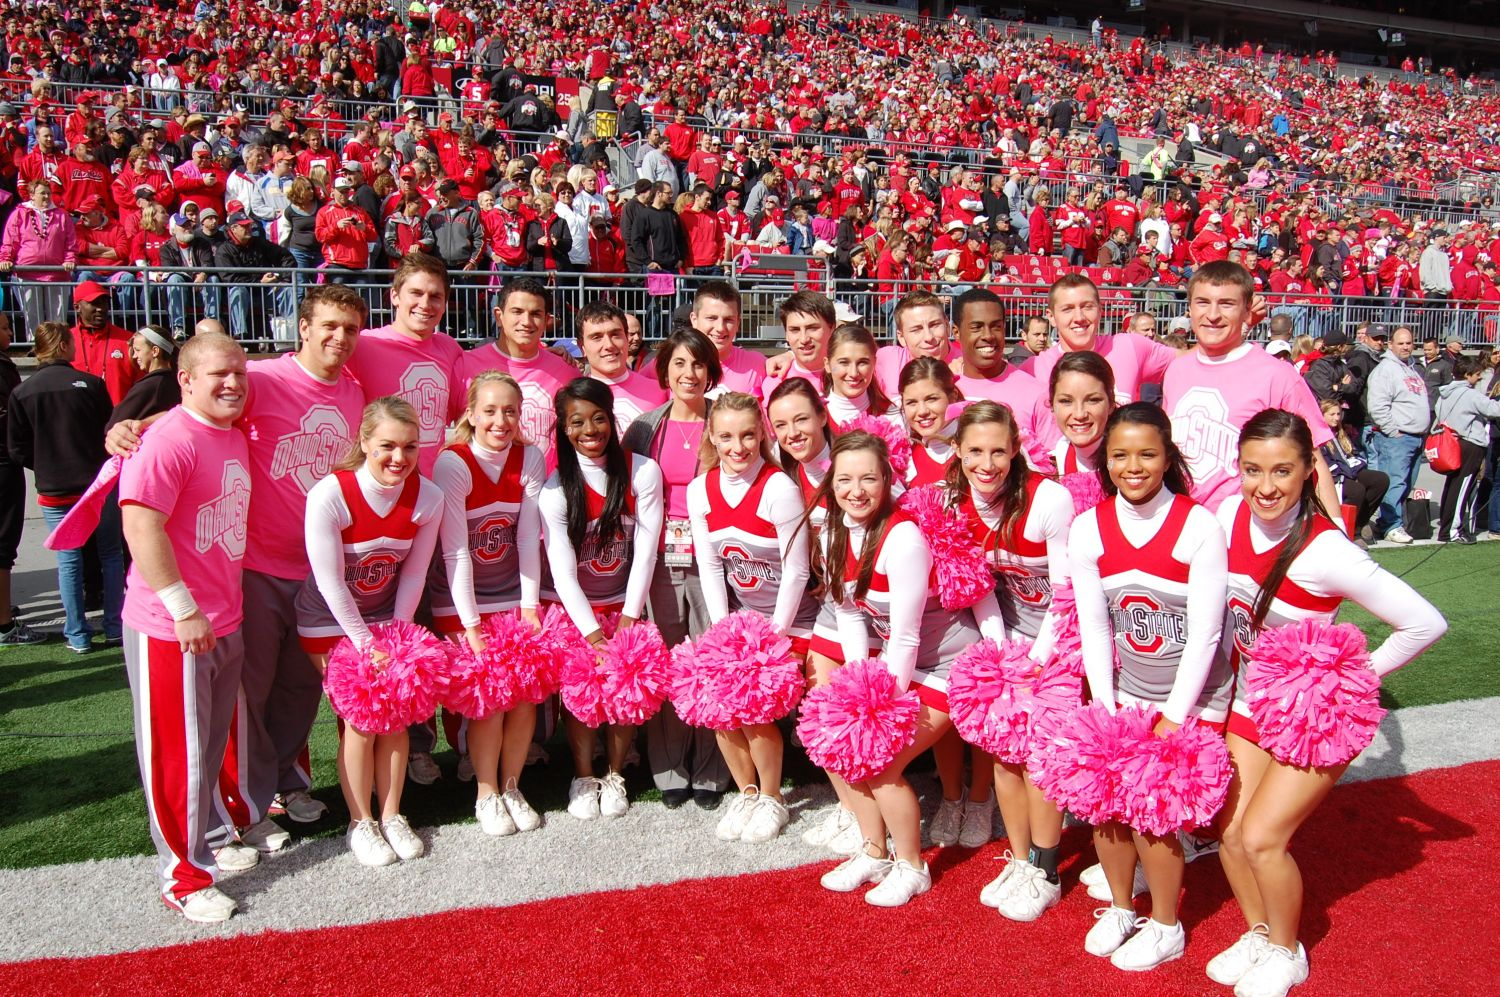 Breast Cancer Awareness - The Ohio State Cheerleaders getting into the pink spirit during the October 20, 2012 game vs. Purdue.